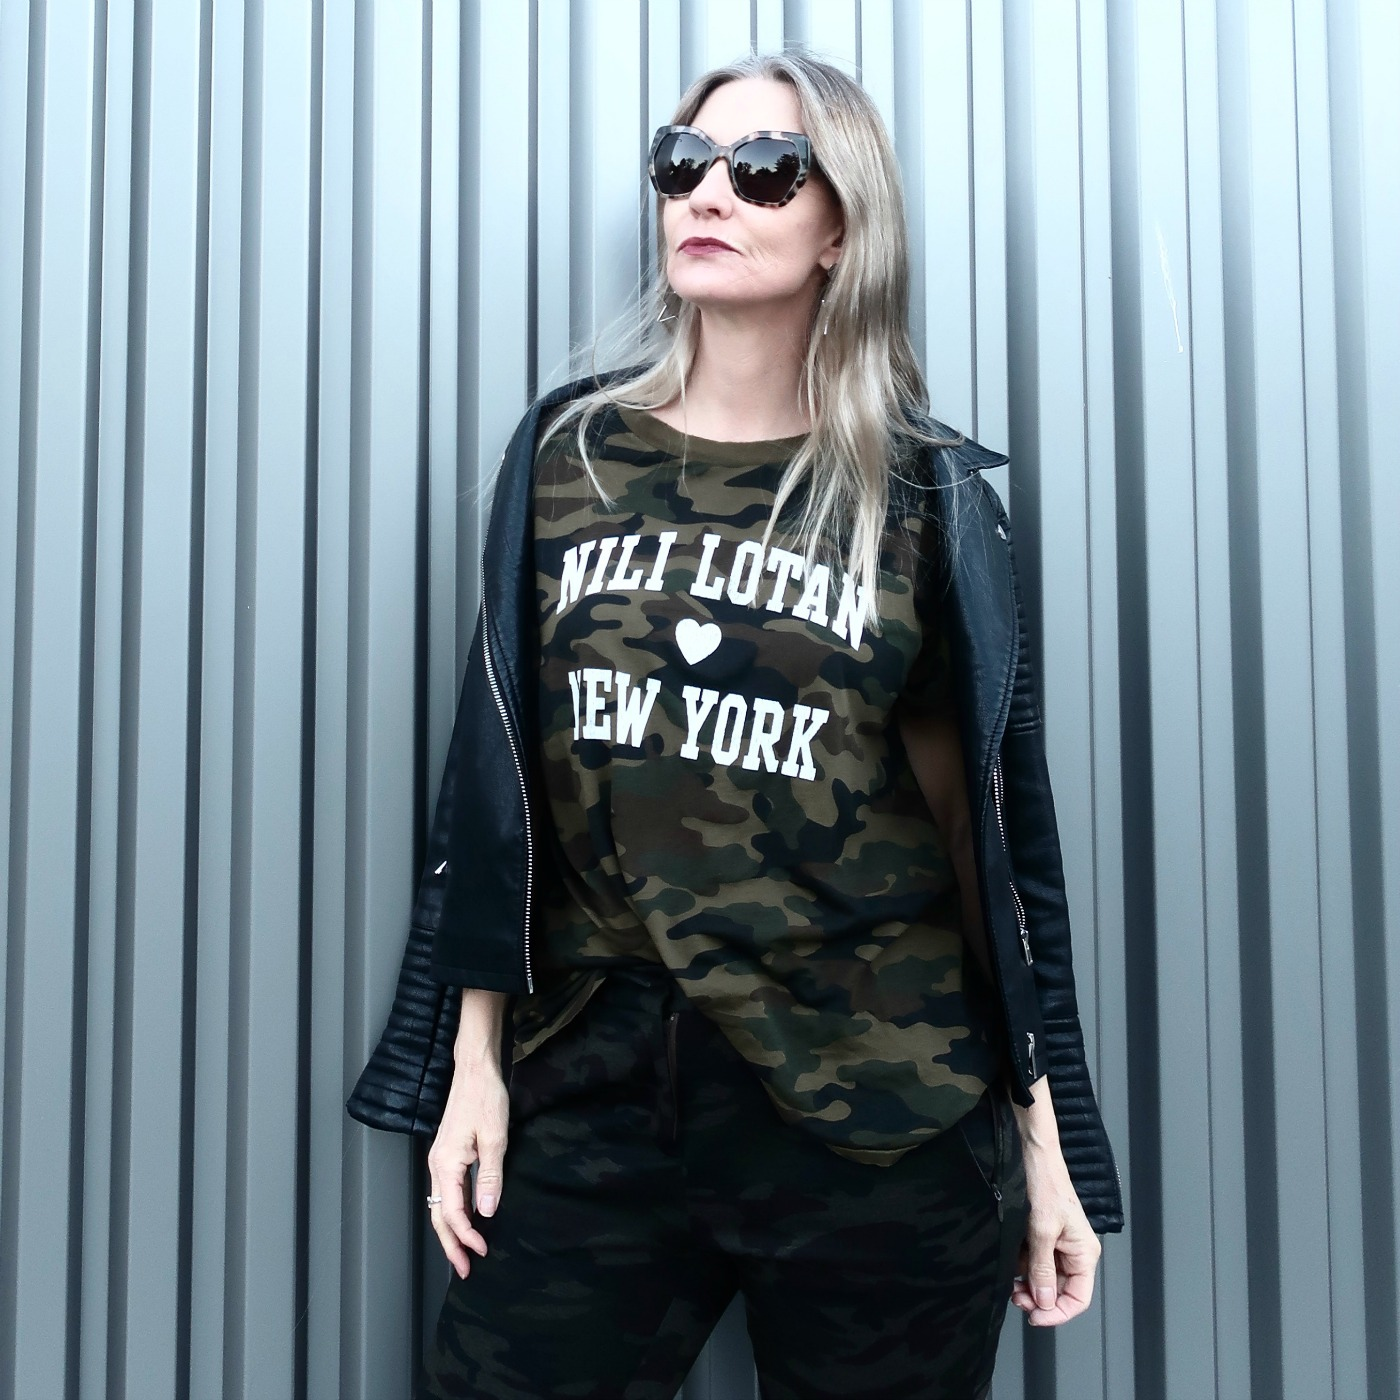 Nili Lotan Loves New York Tee